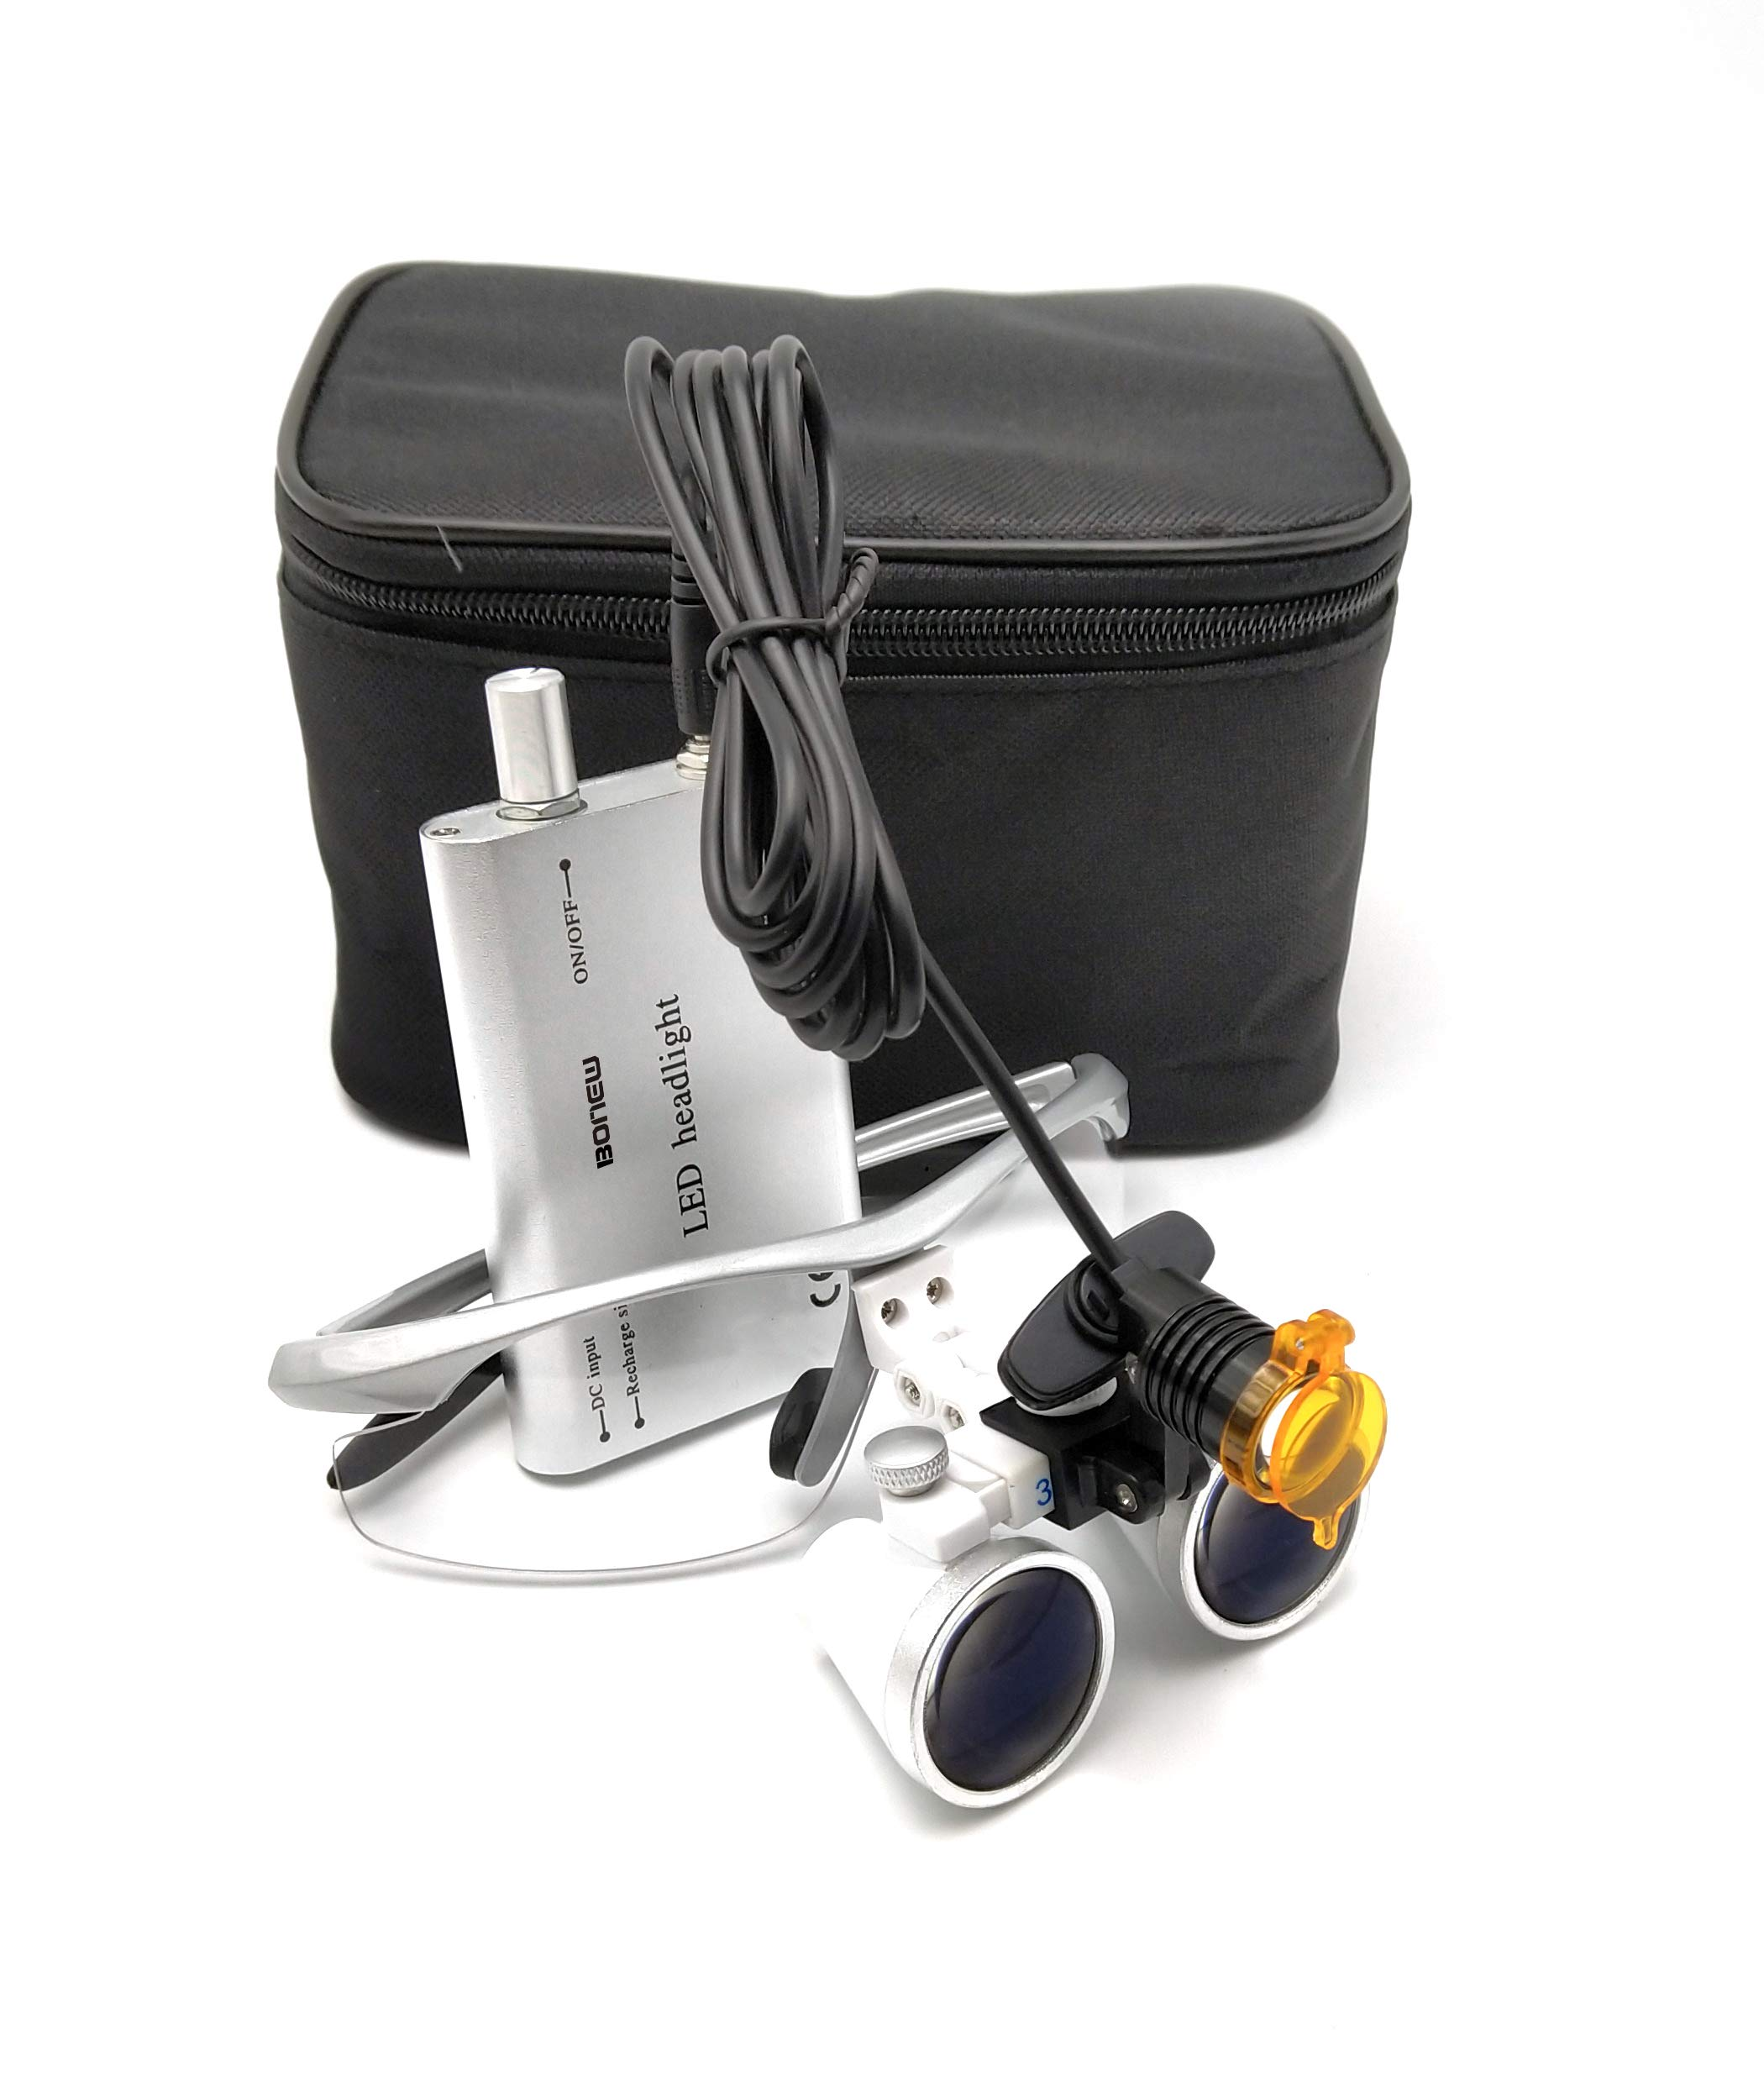 Global-Dental 3W LED Headlight Lamp with Filter +3.5X 420mm Binocular Loupes Optical Glasses Bag (Silver)